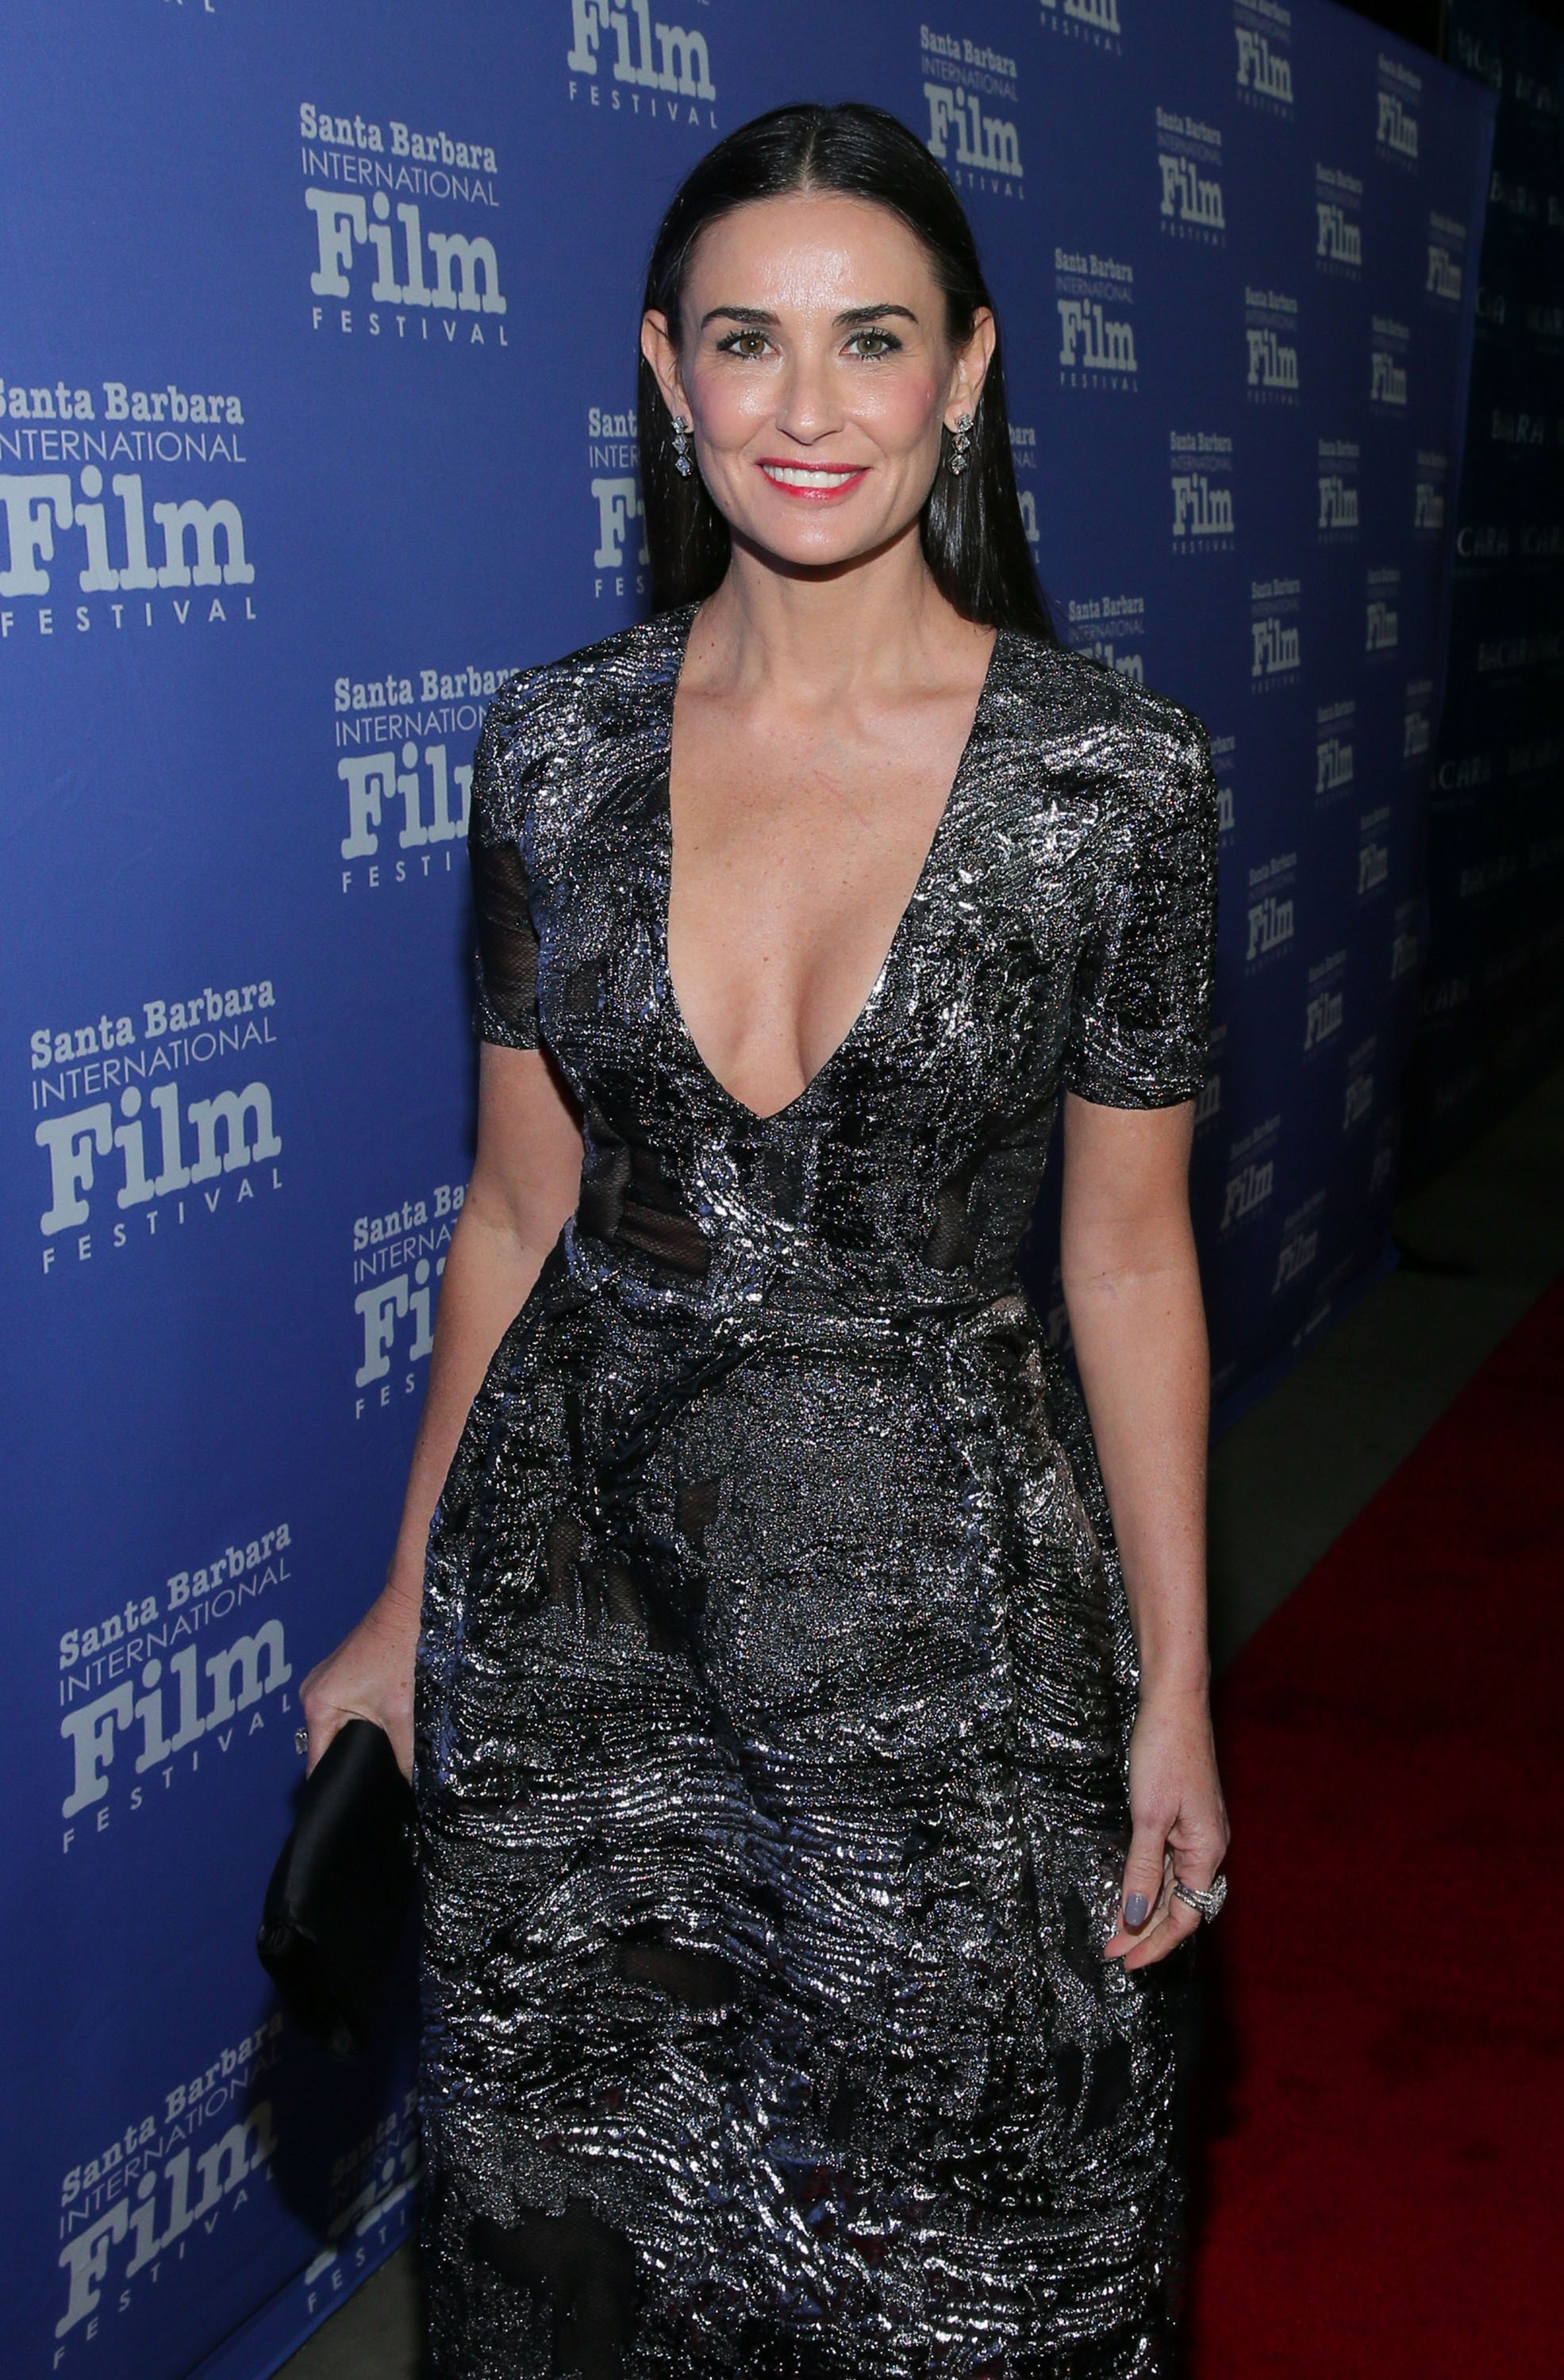 GOLETA, CA - NOVEMBER 16:  Actress Demi Moore attends the Santa Barbara International Film Festival 9th Annual Kirk Douglas Award for Excellence in Film honoring Jessica Lange held at the Bacara Resort on November 16, 2014 in Goleta, California  (Photo by (Foto: Editora Globo)